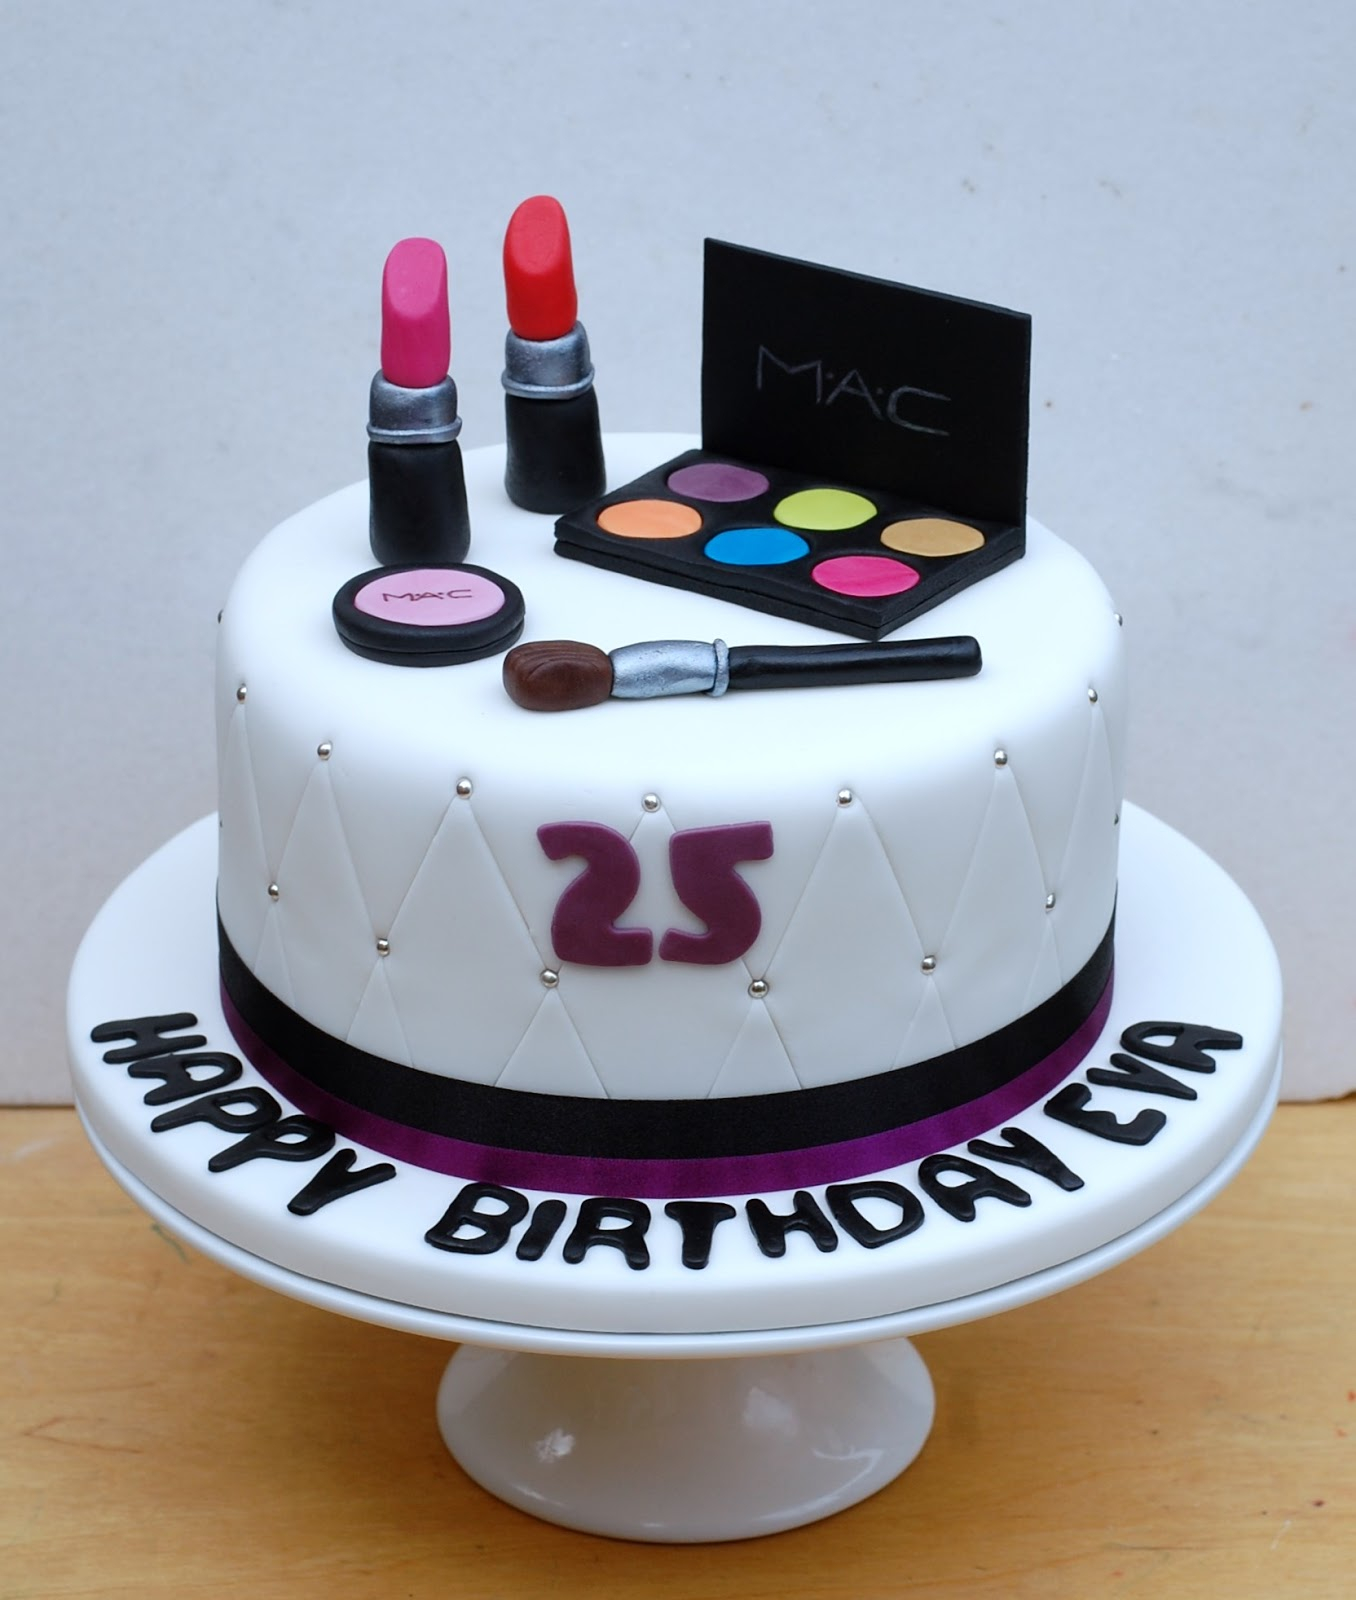 Miraculous 25Th Birthday Cakes Make Up Birthday Cake Vanilla Frost Cakes Funny Birthday Cards Online Alyptdamsfinfo